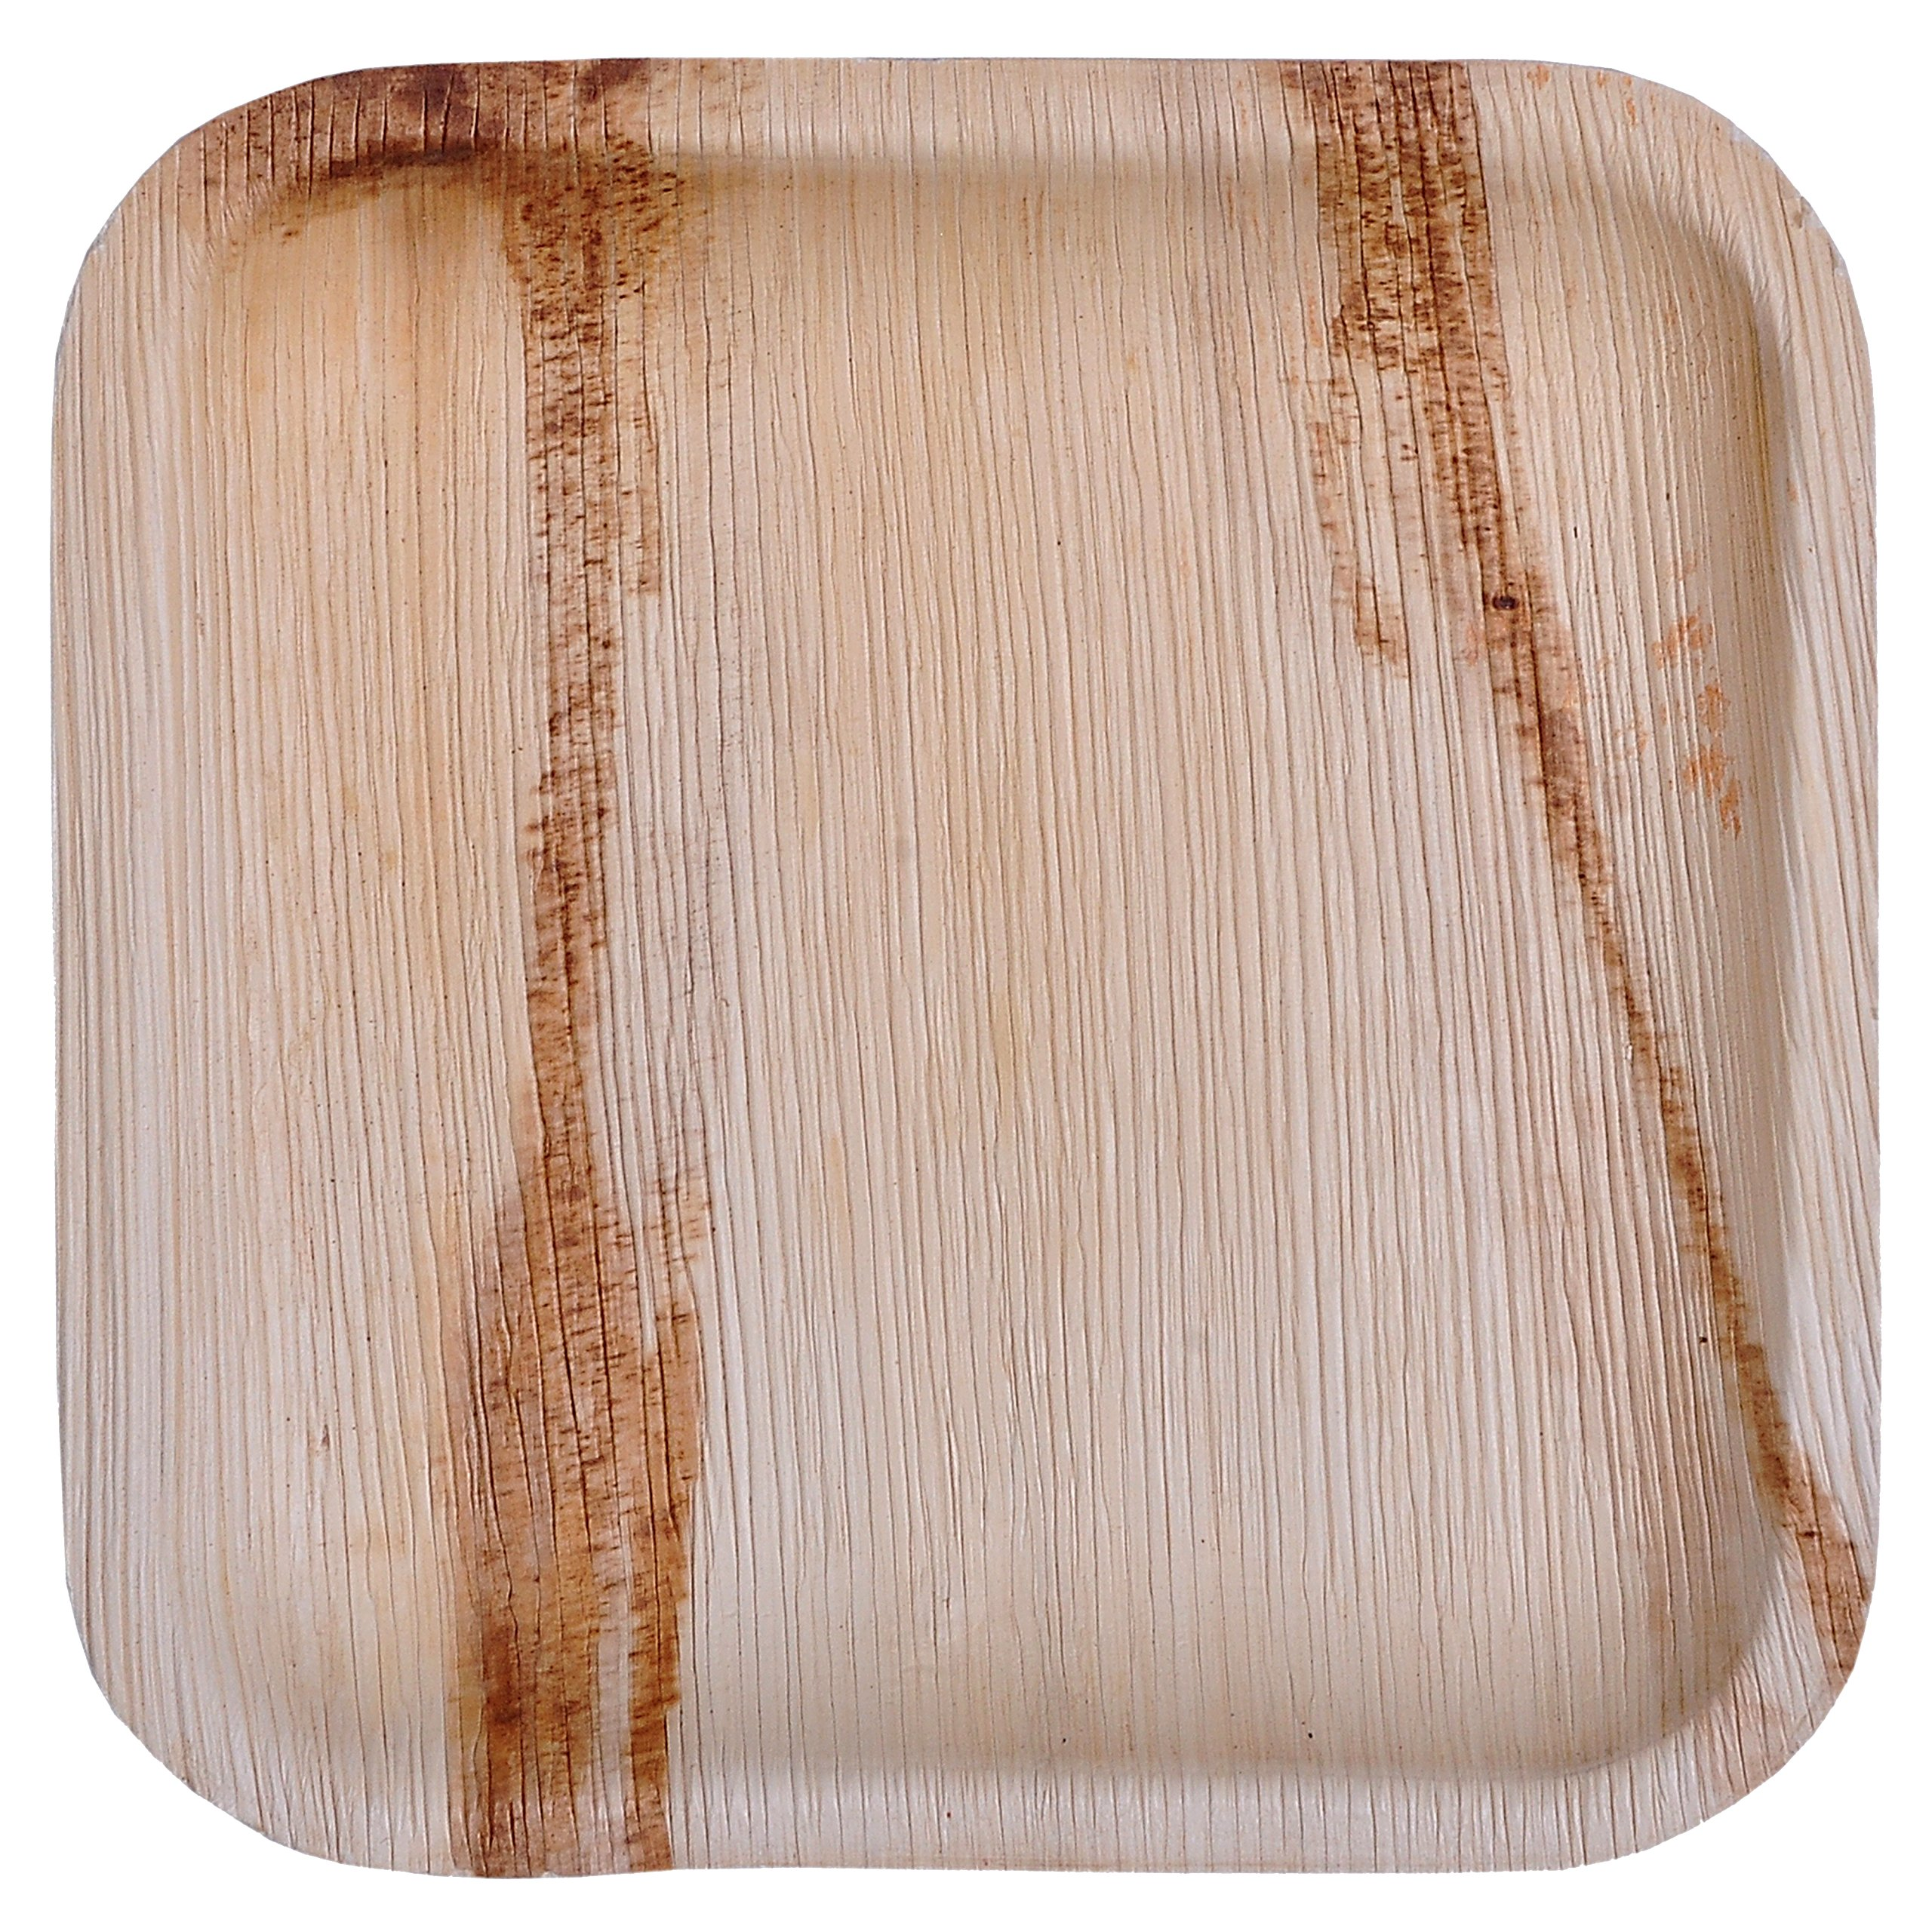 GREEN ATMOS 100 PACK - 8'' SQUARE SALAD / DESSERT / SIDE PLATE BIODEGRADABLE, COMPOSTABLE AND ECO-FRIENDLY DISPOSABLE ARECA PALM LEAF PLATES